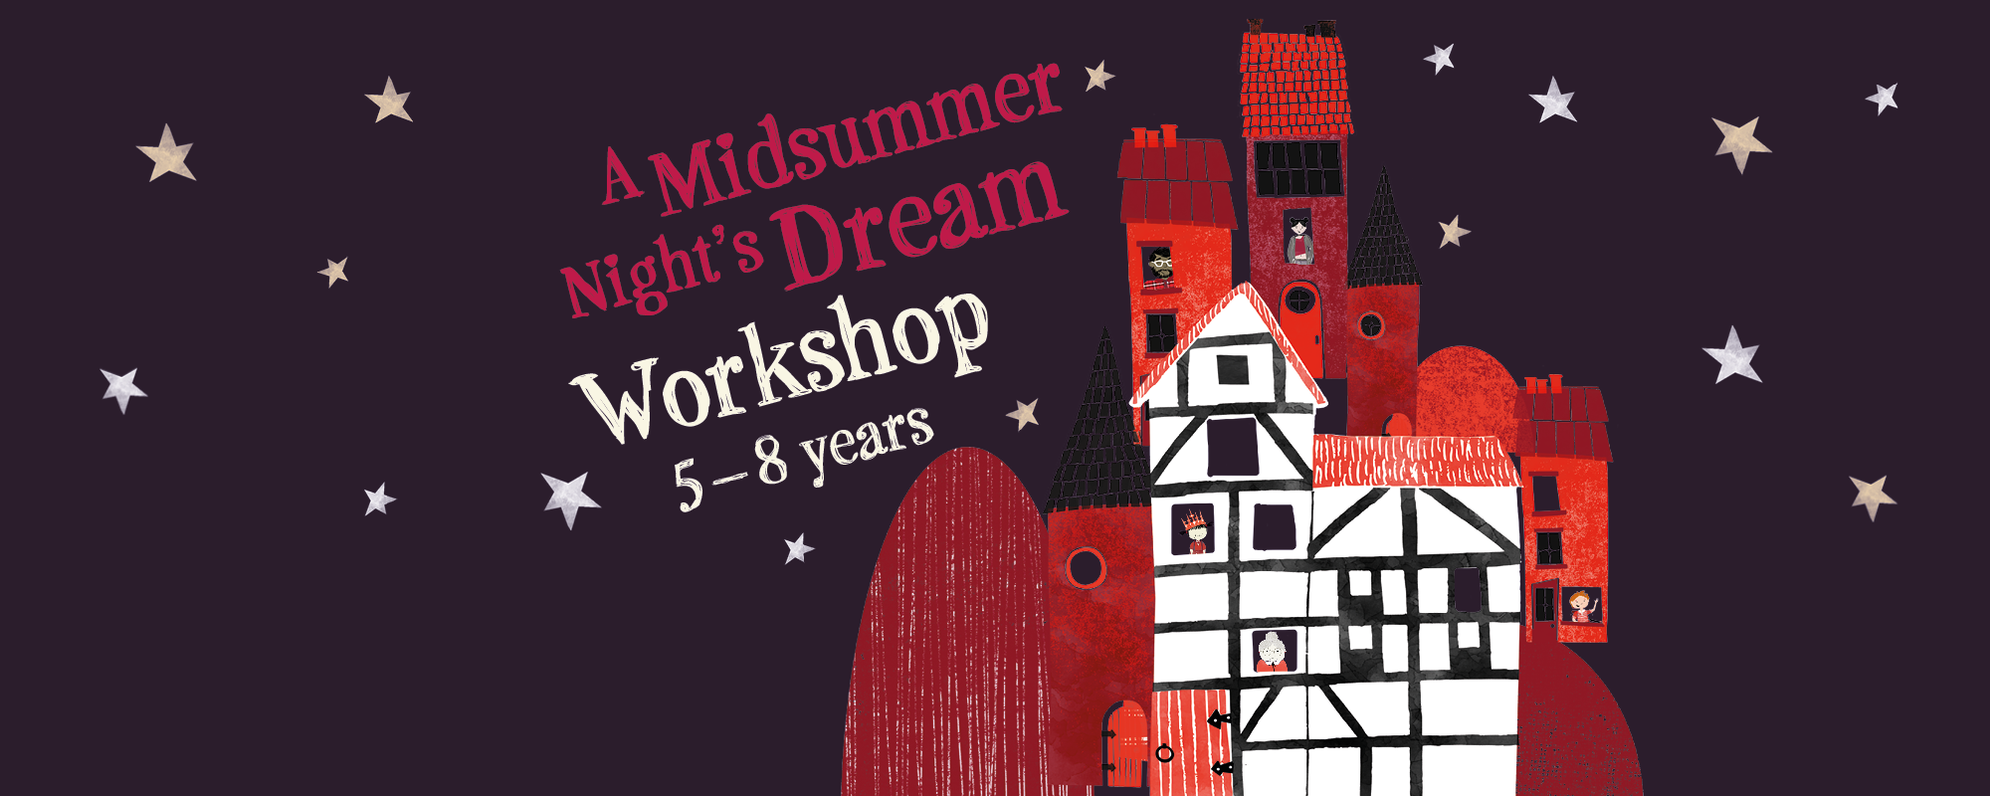 Title 'A Midsummer Night's Dream Workshop 9-12 years' alongside cartoon houses and figures